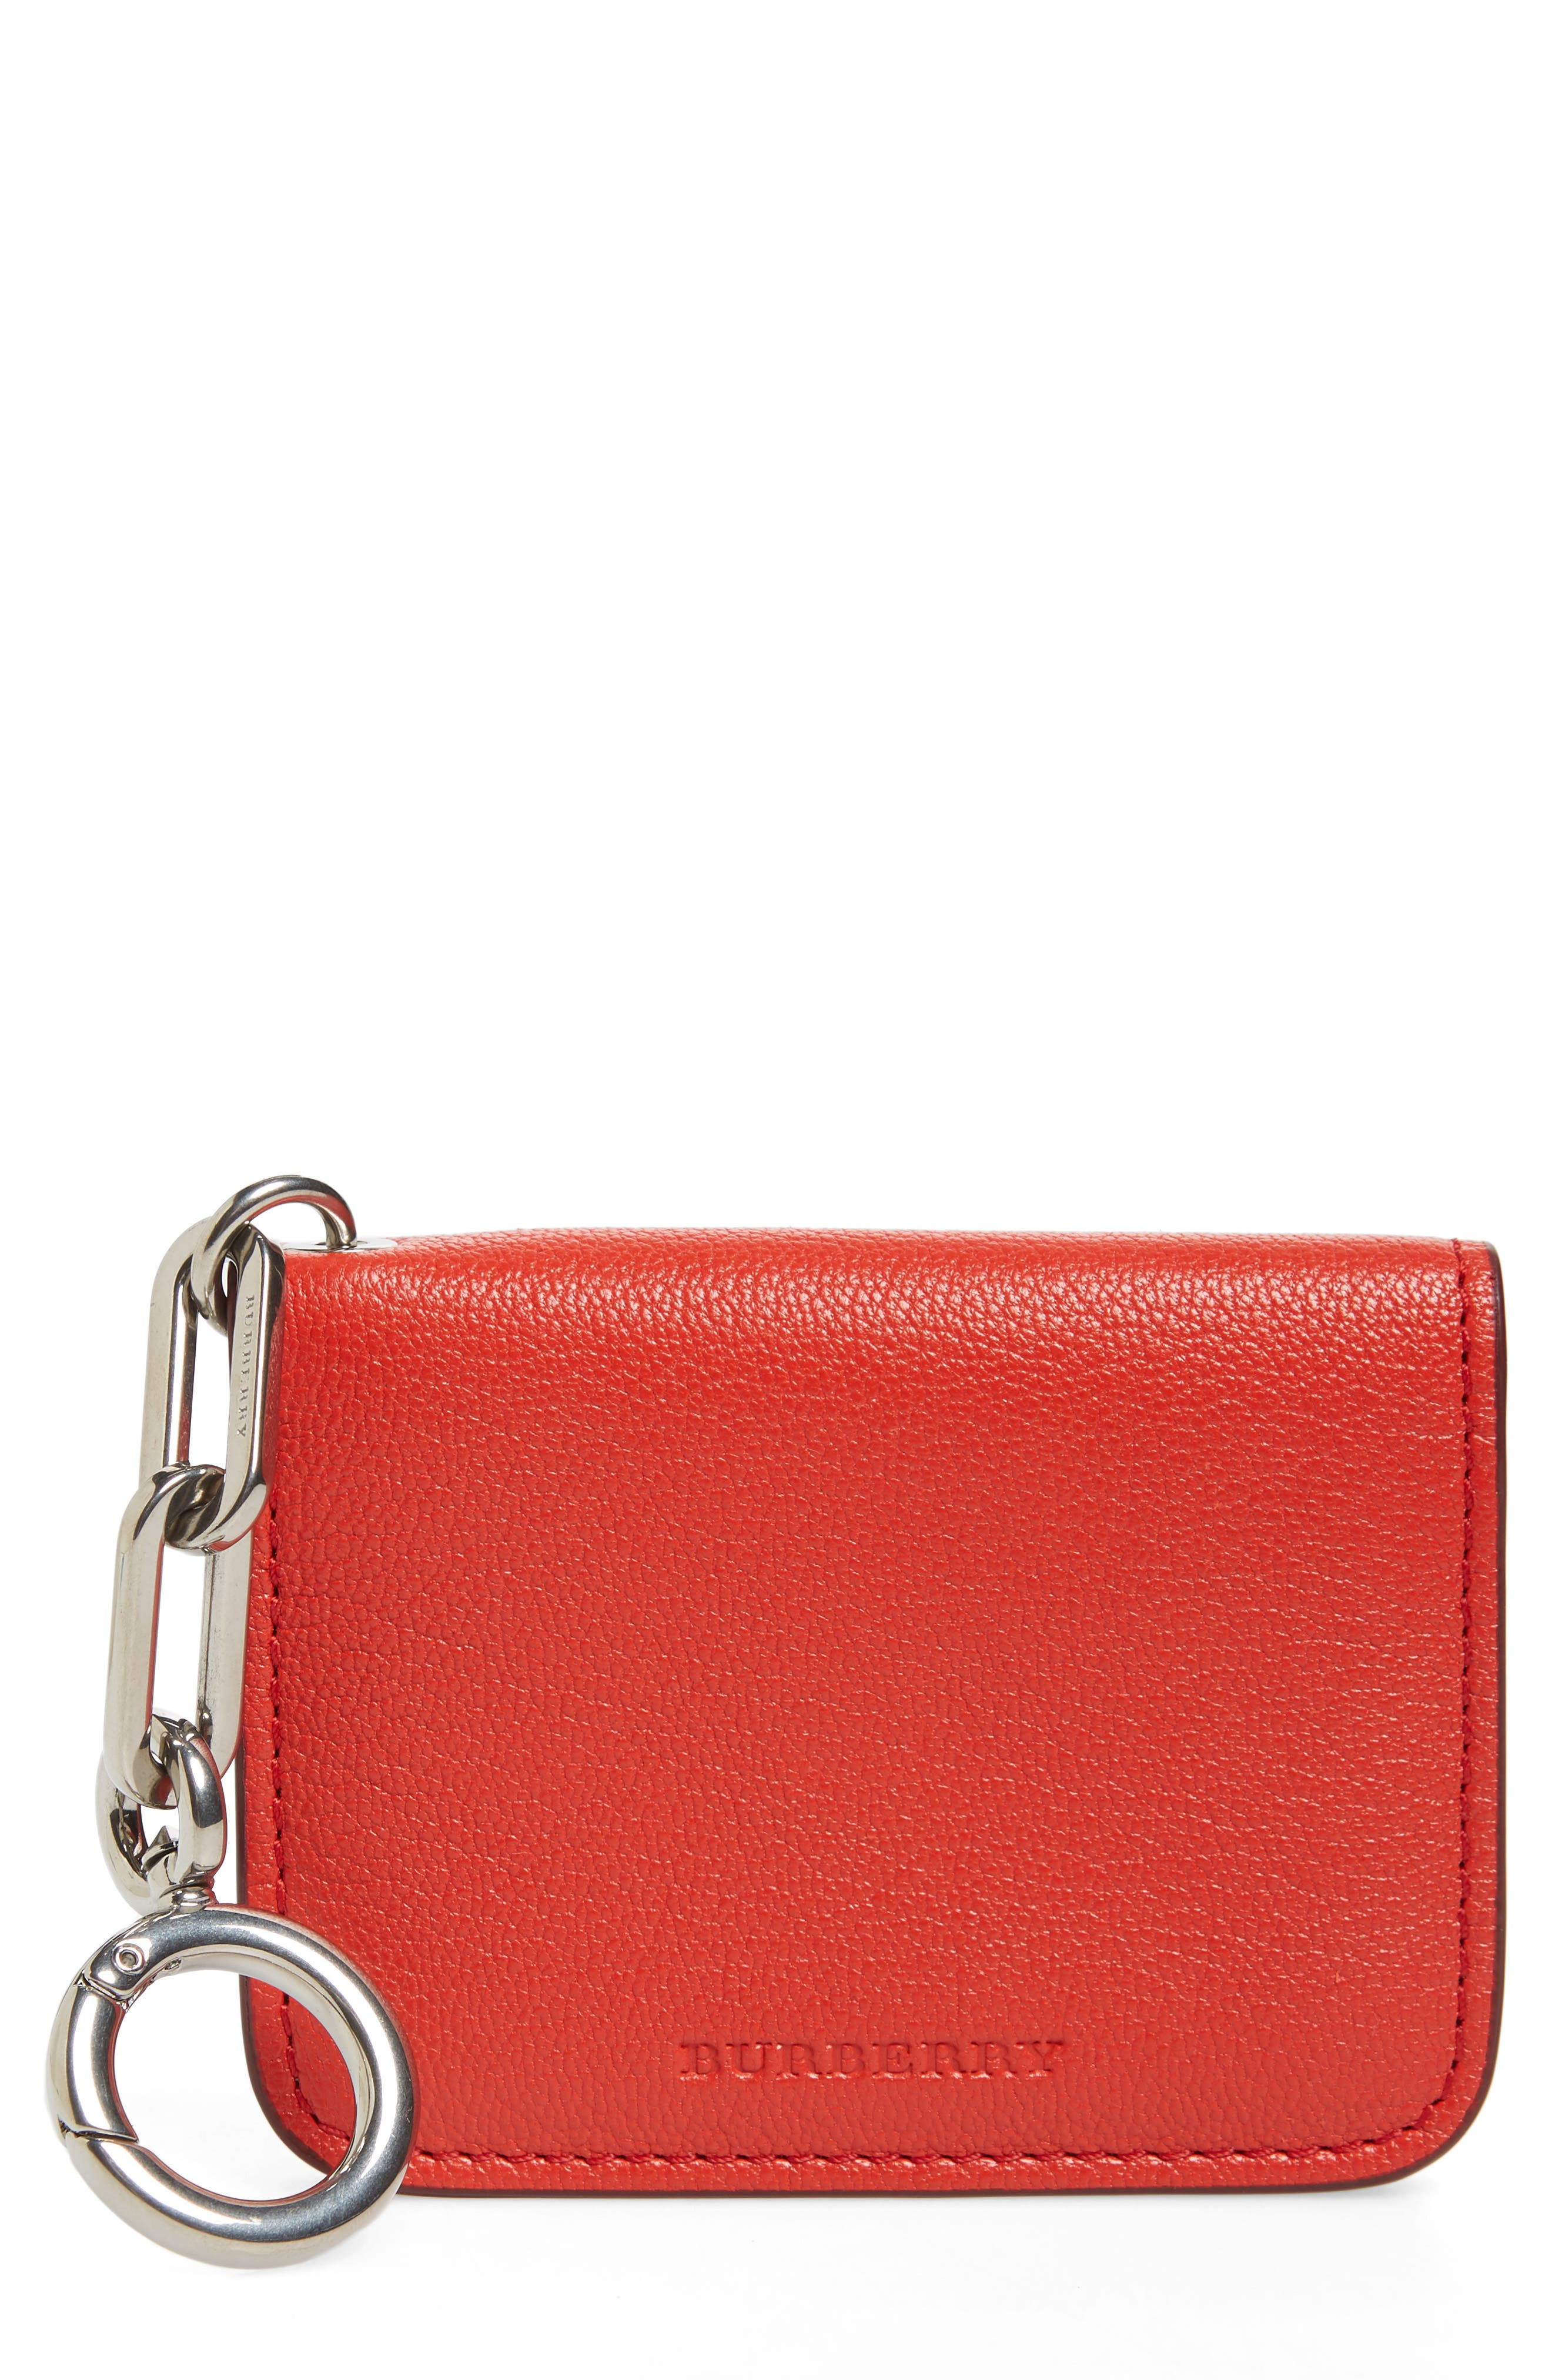 Wallet for Women, Light Red, Leather, 2017, One size Alexander McQueen